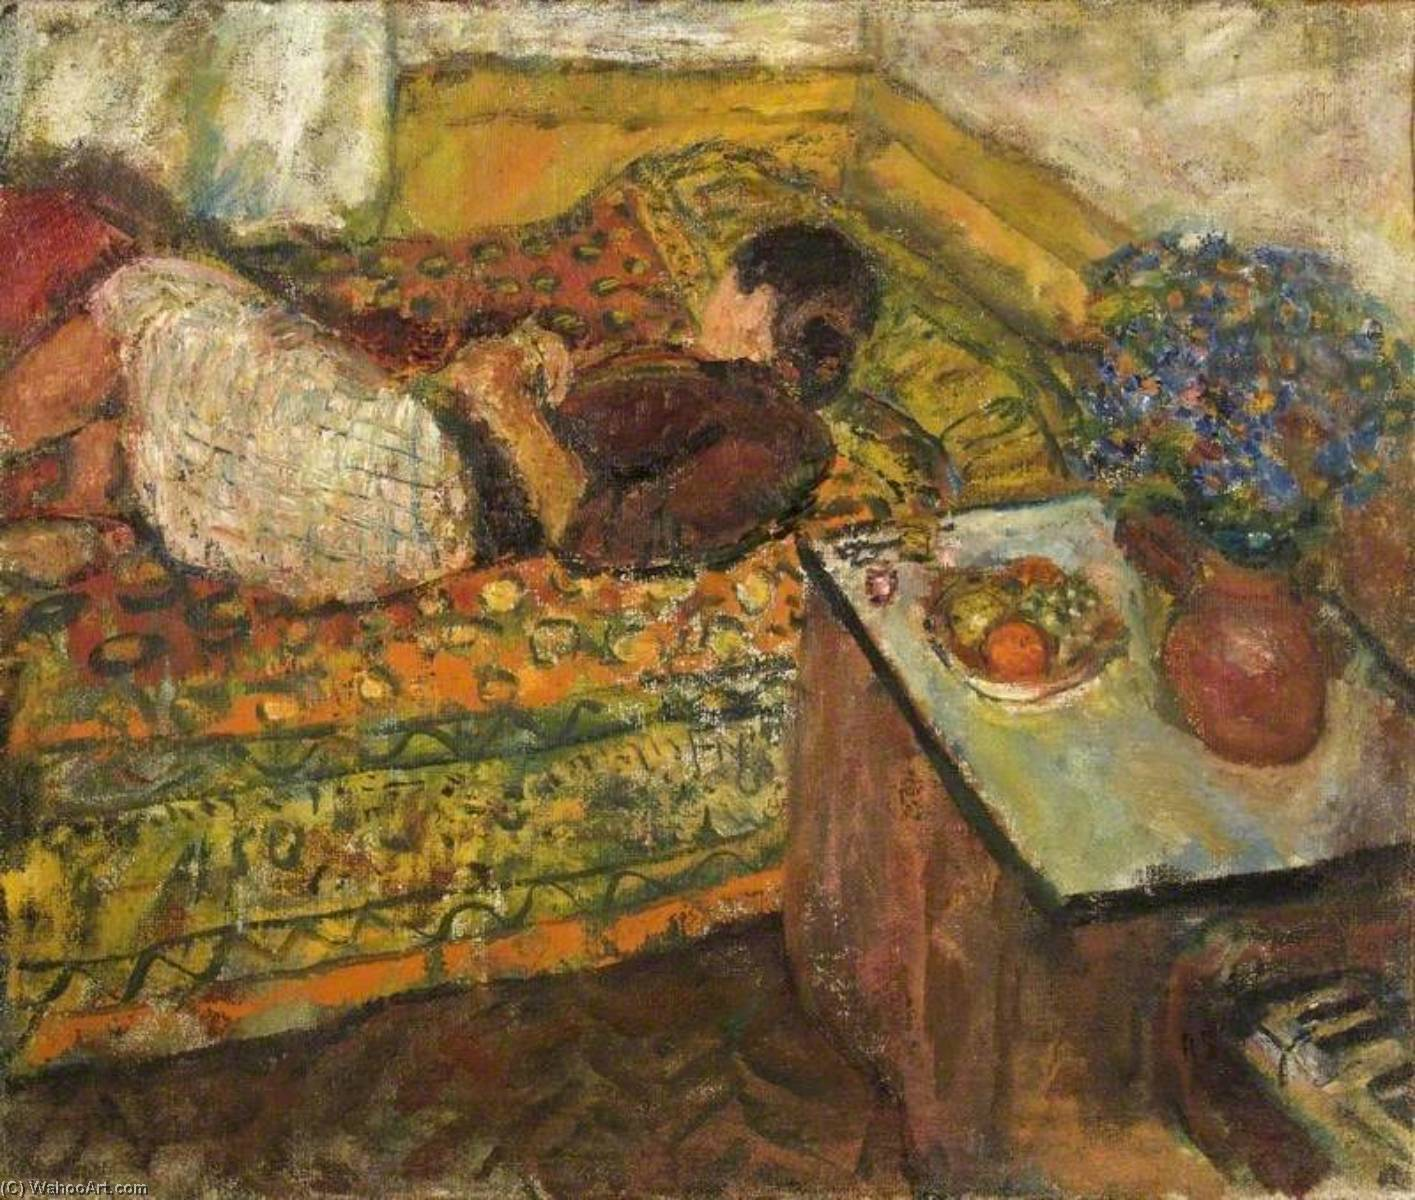 | Siesta di Ruskin Spear | Most-Famous-Paintings.com